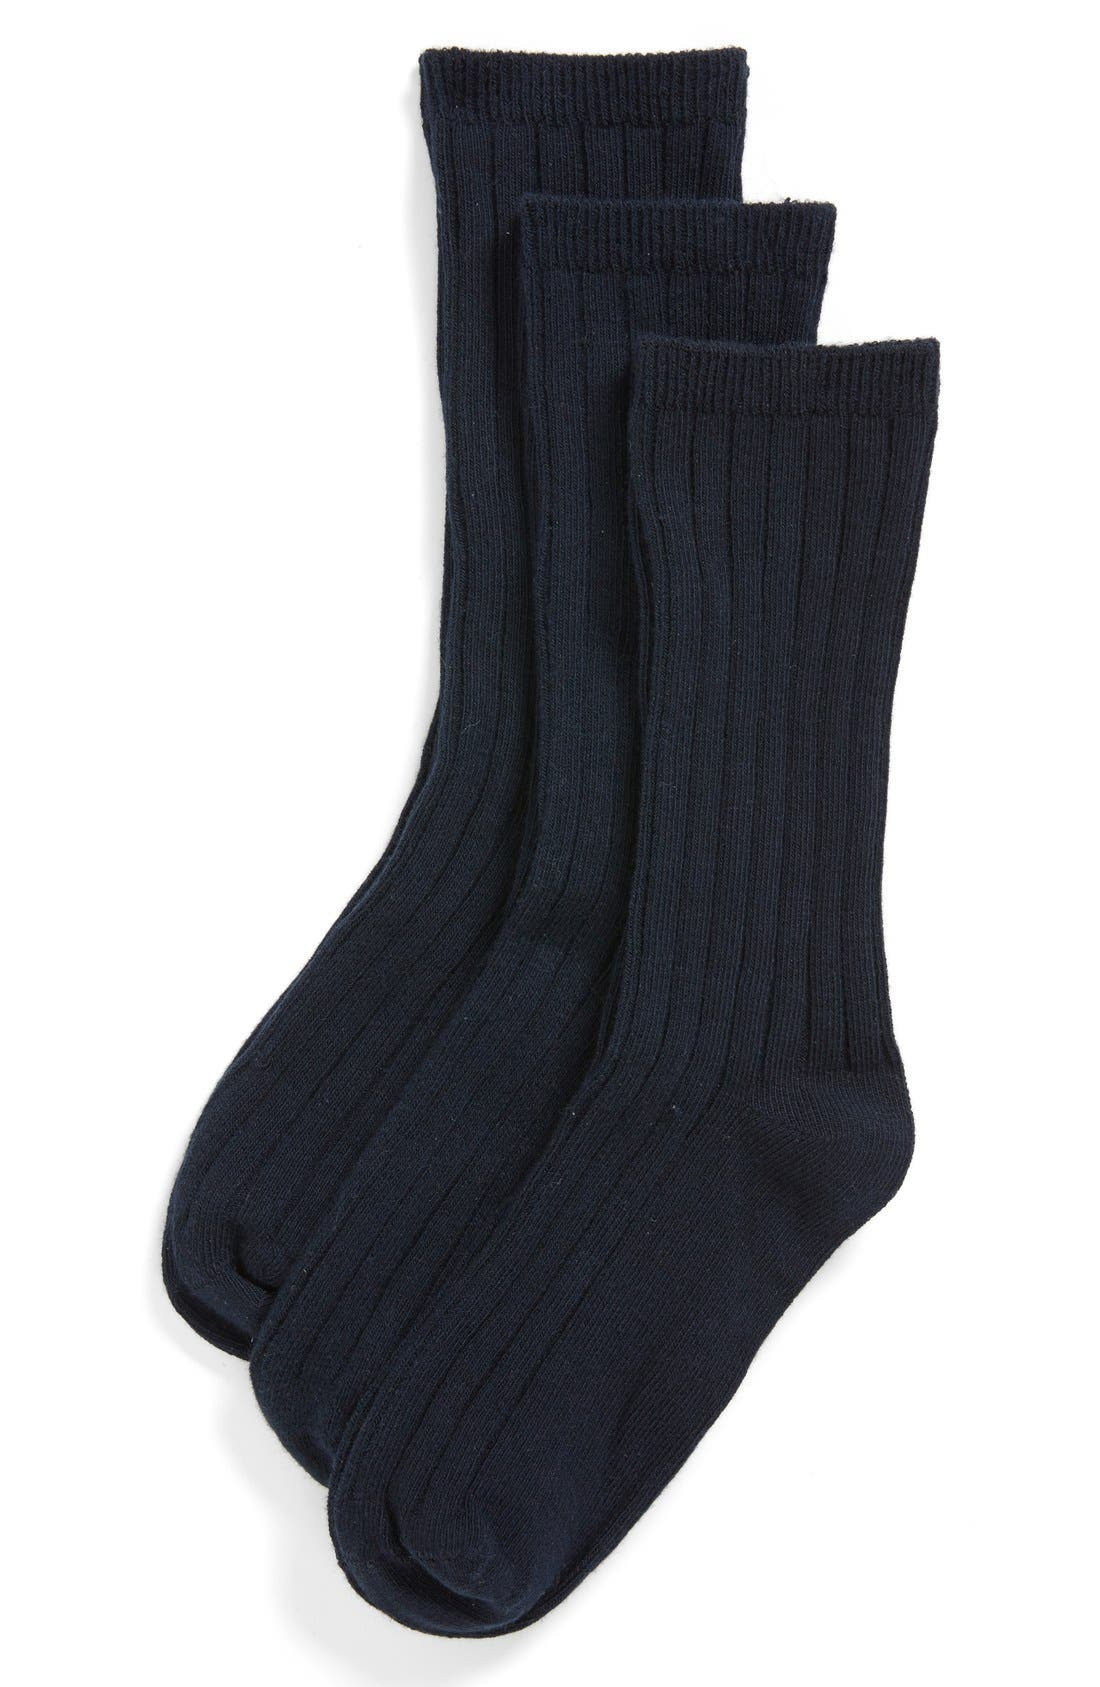 Nordstrom 3-Pack Dress Socks (Toddler Boys, Little Boys & Big Boys)